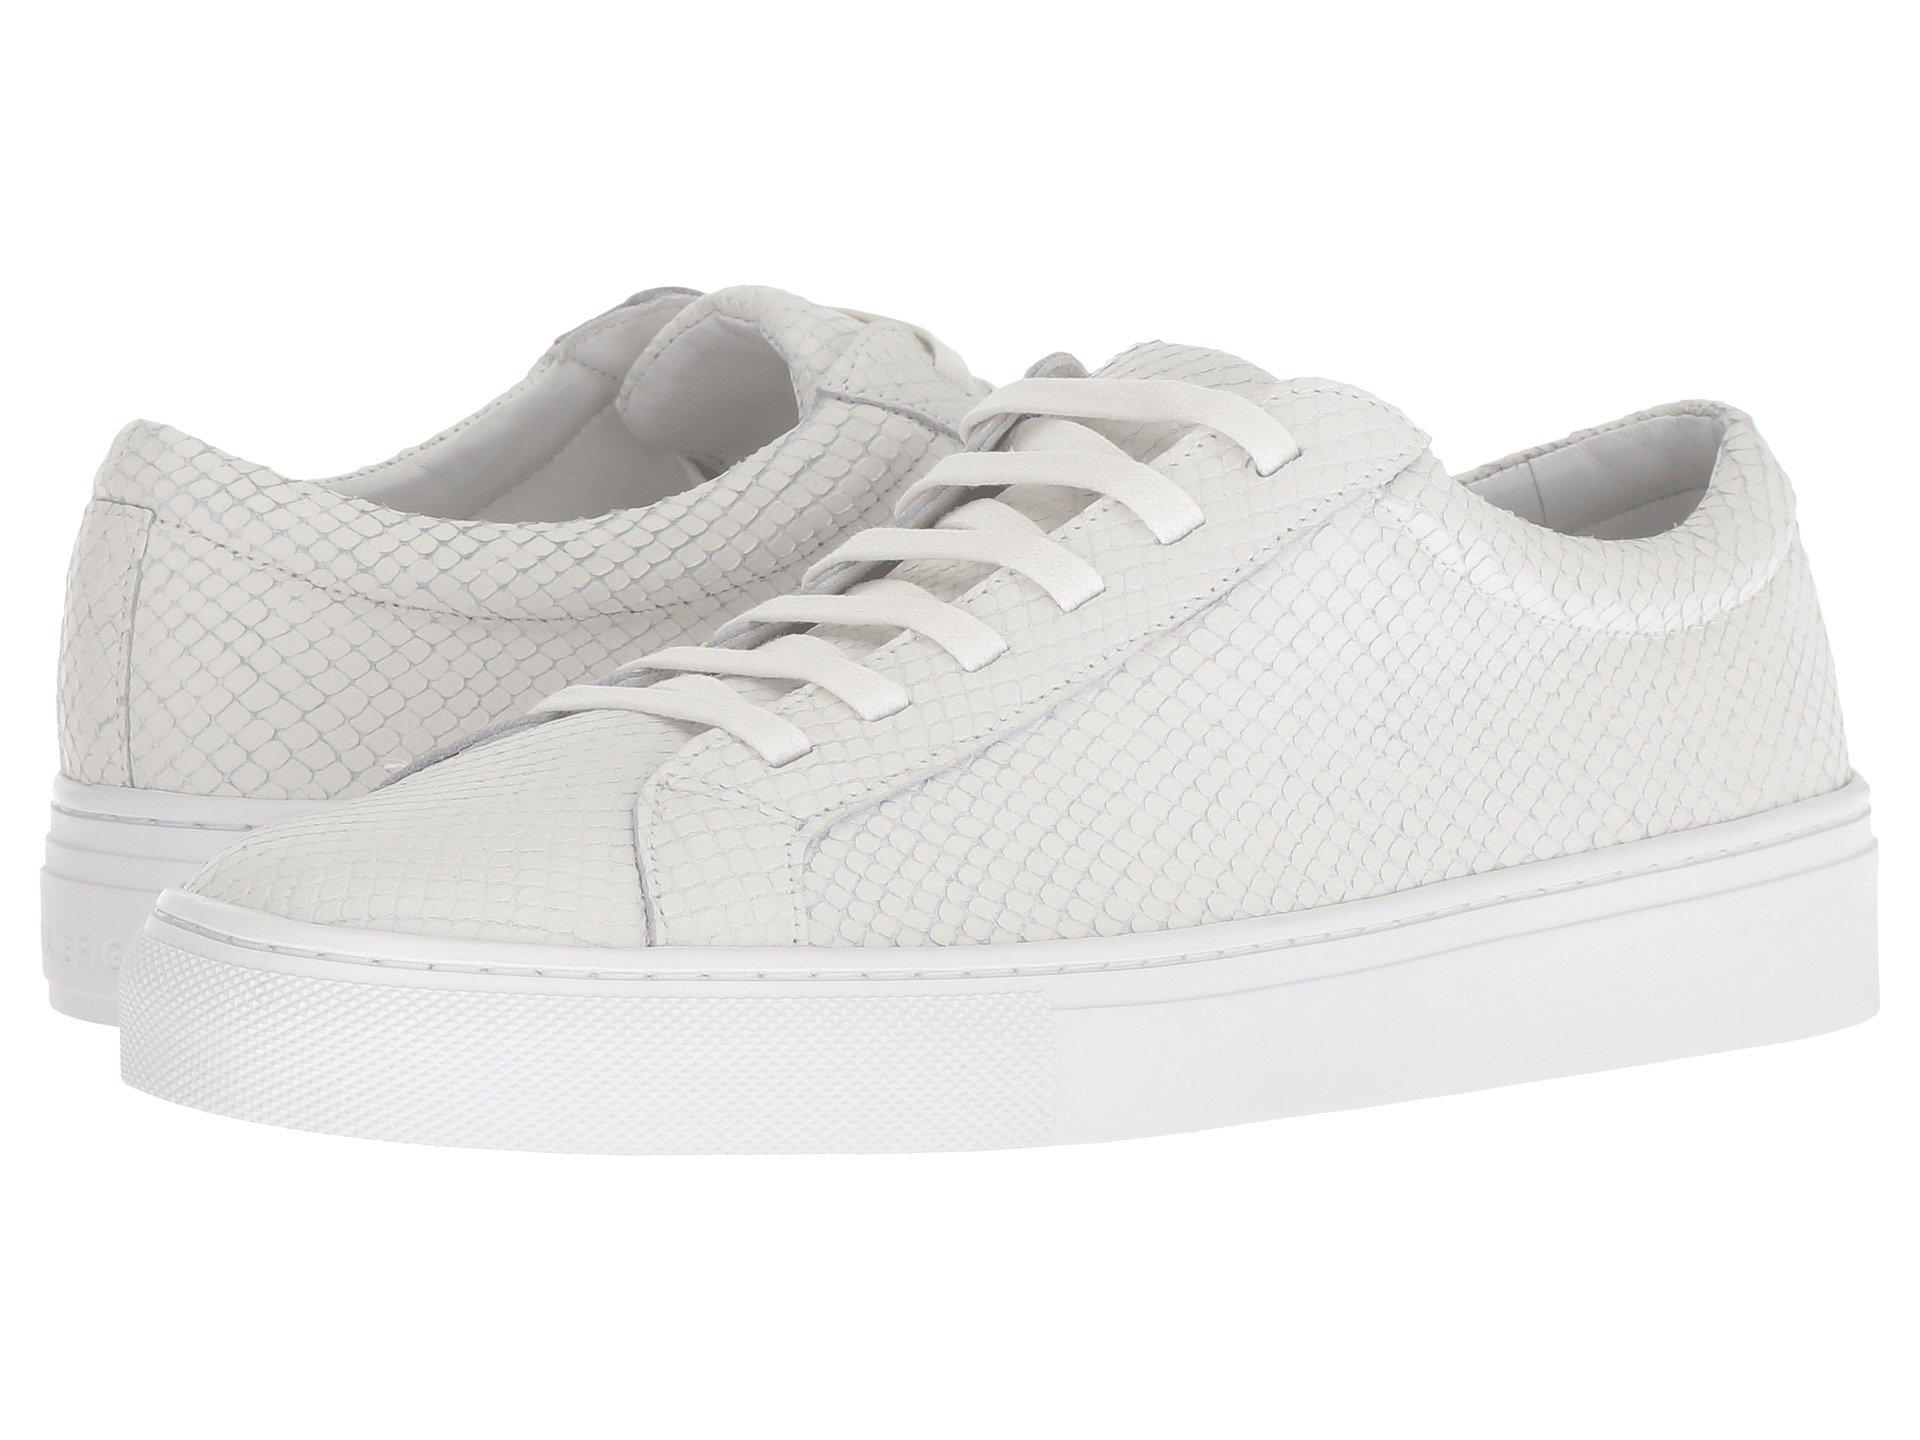 Via Spiga Suvi 2 Embossed Snake Leather Sneakers QcEy3